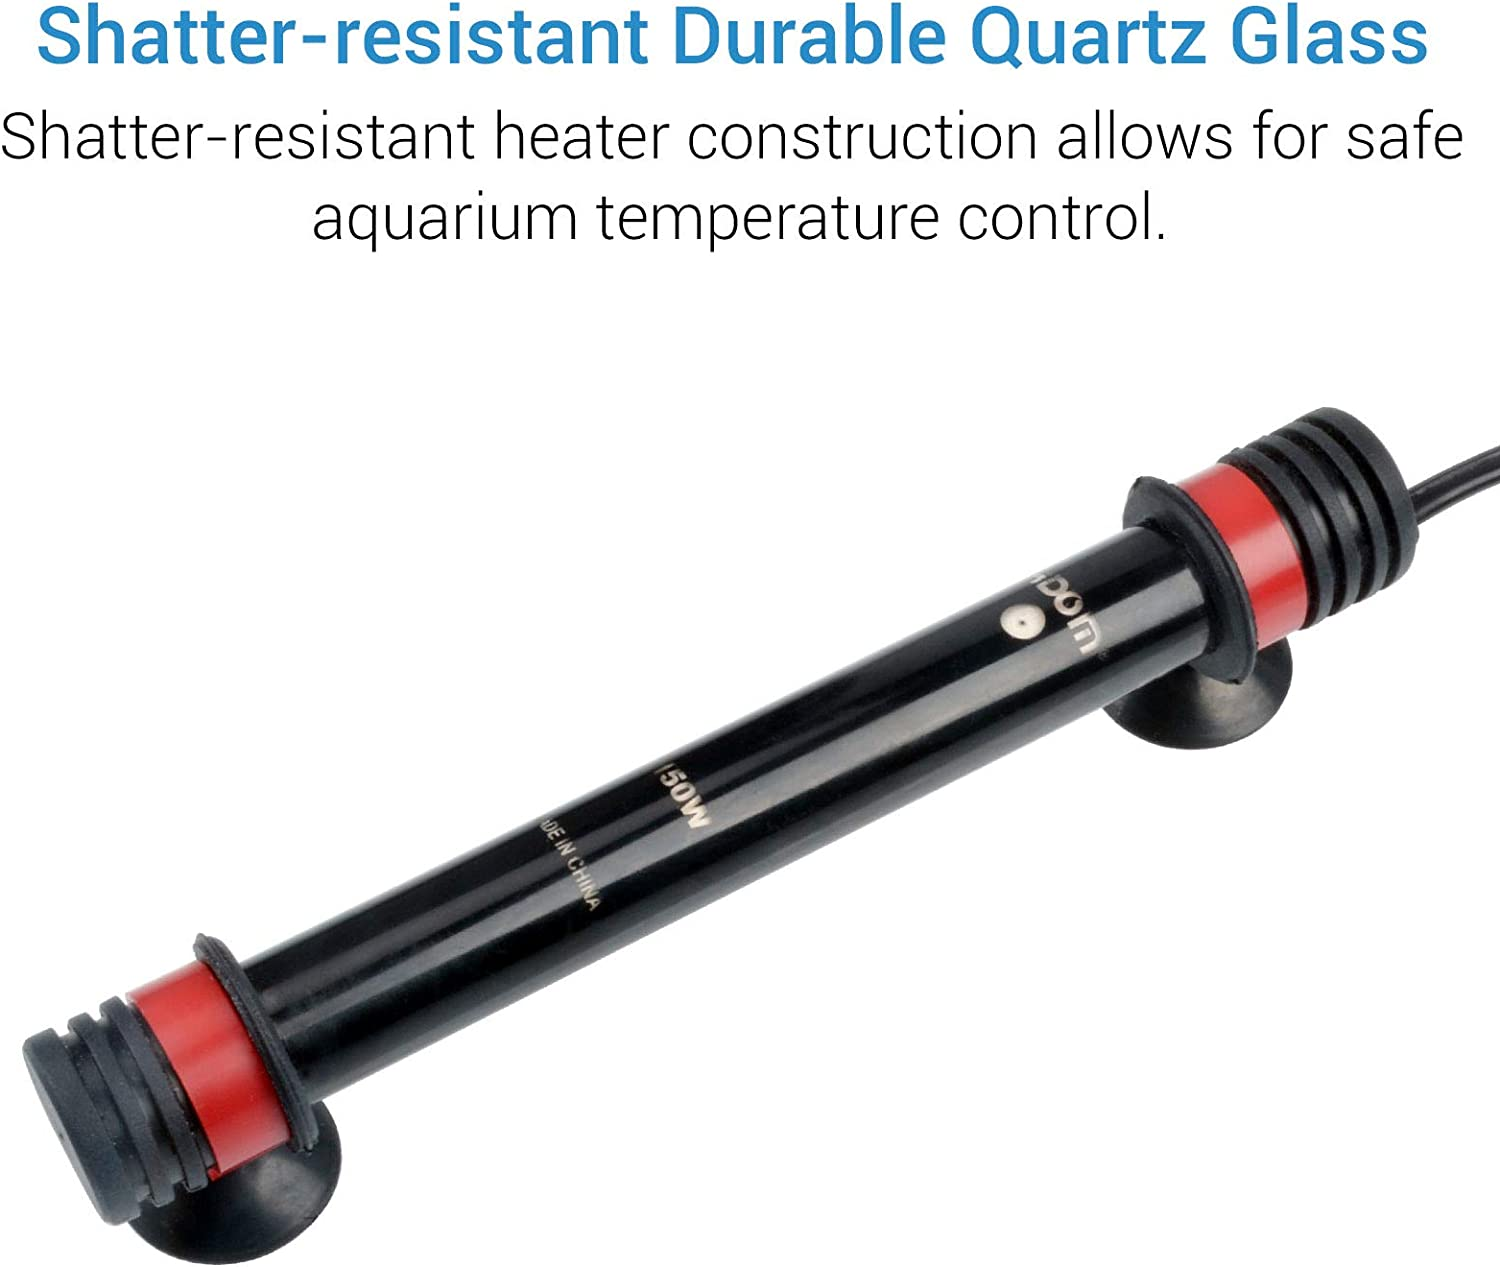 NICREW Preset Aqaurium Heater, Submersible Fish Tank Heater with Electronic Thermostat, UL Listed